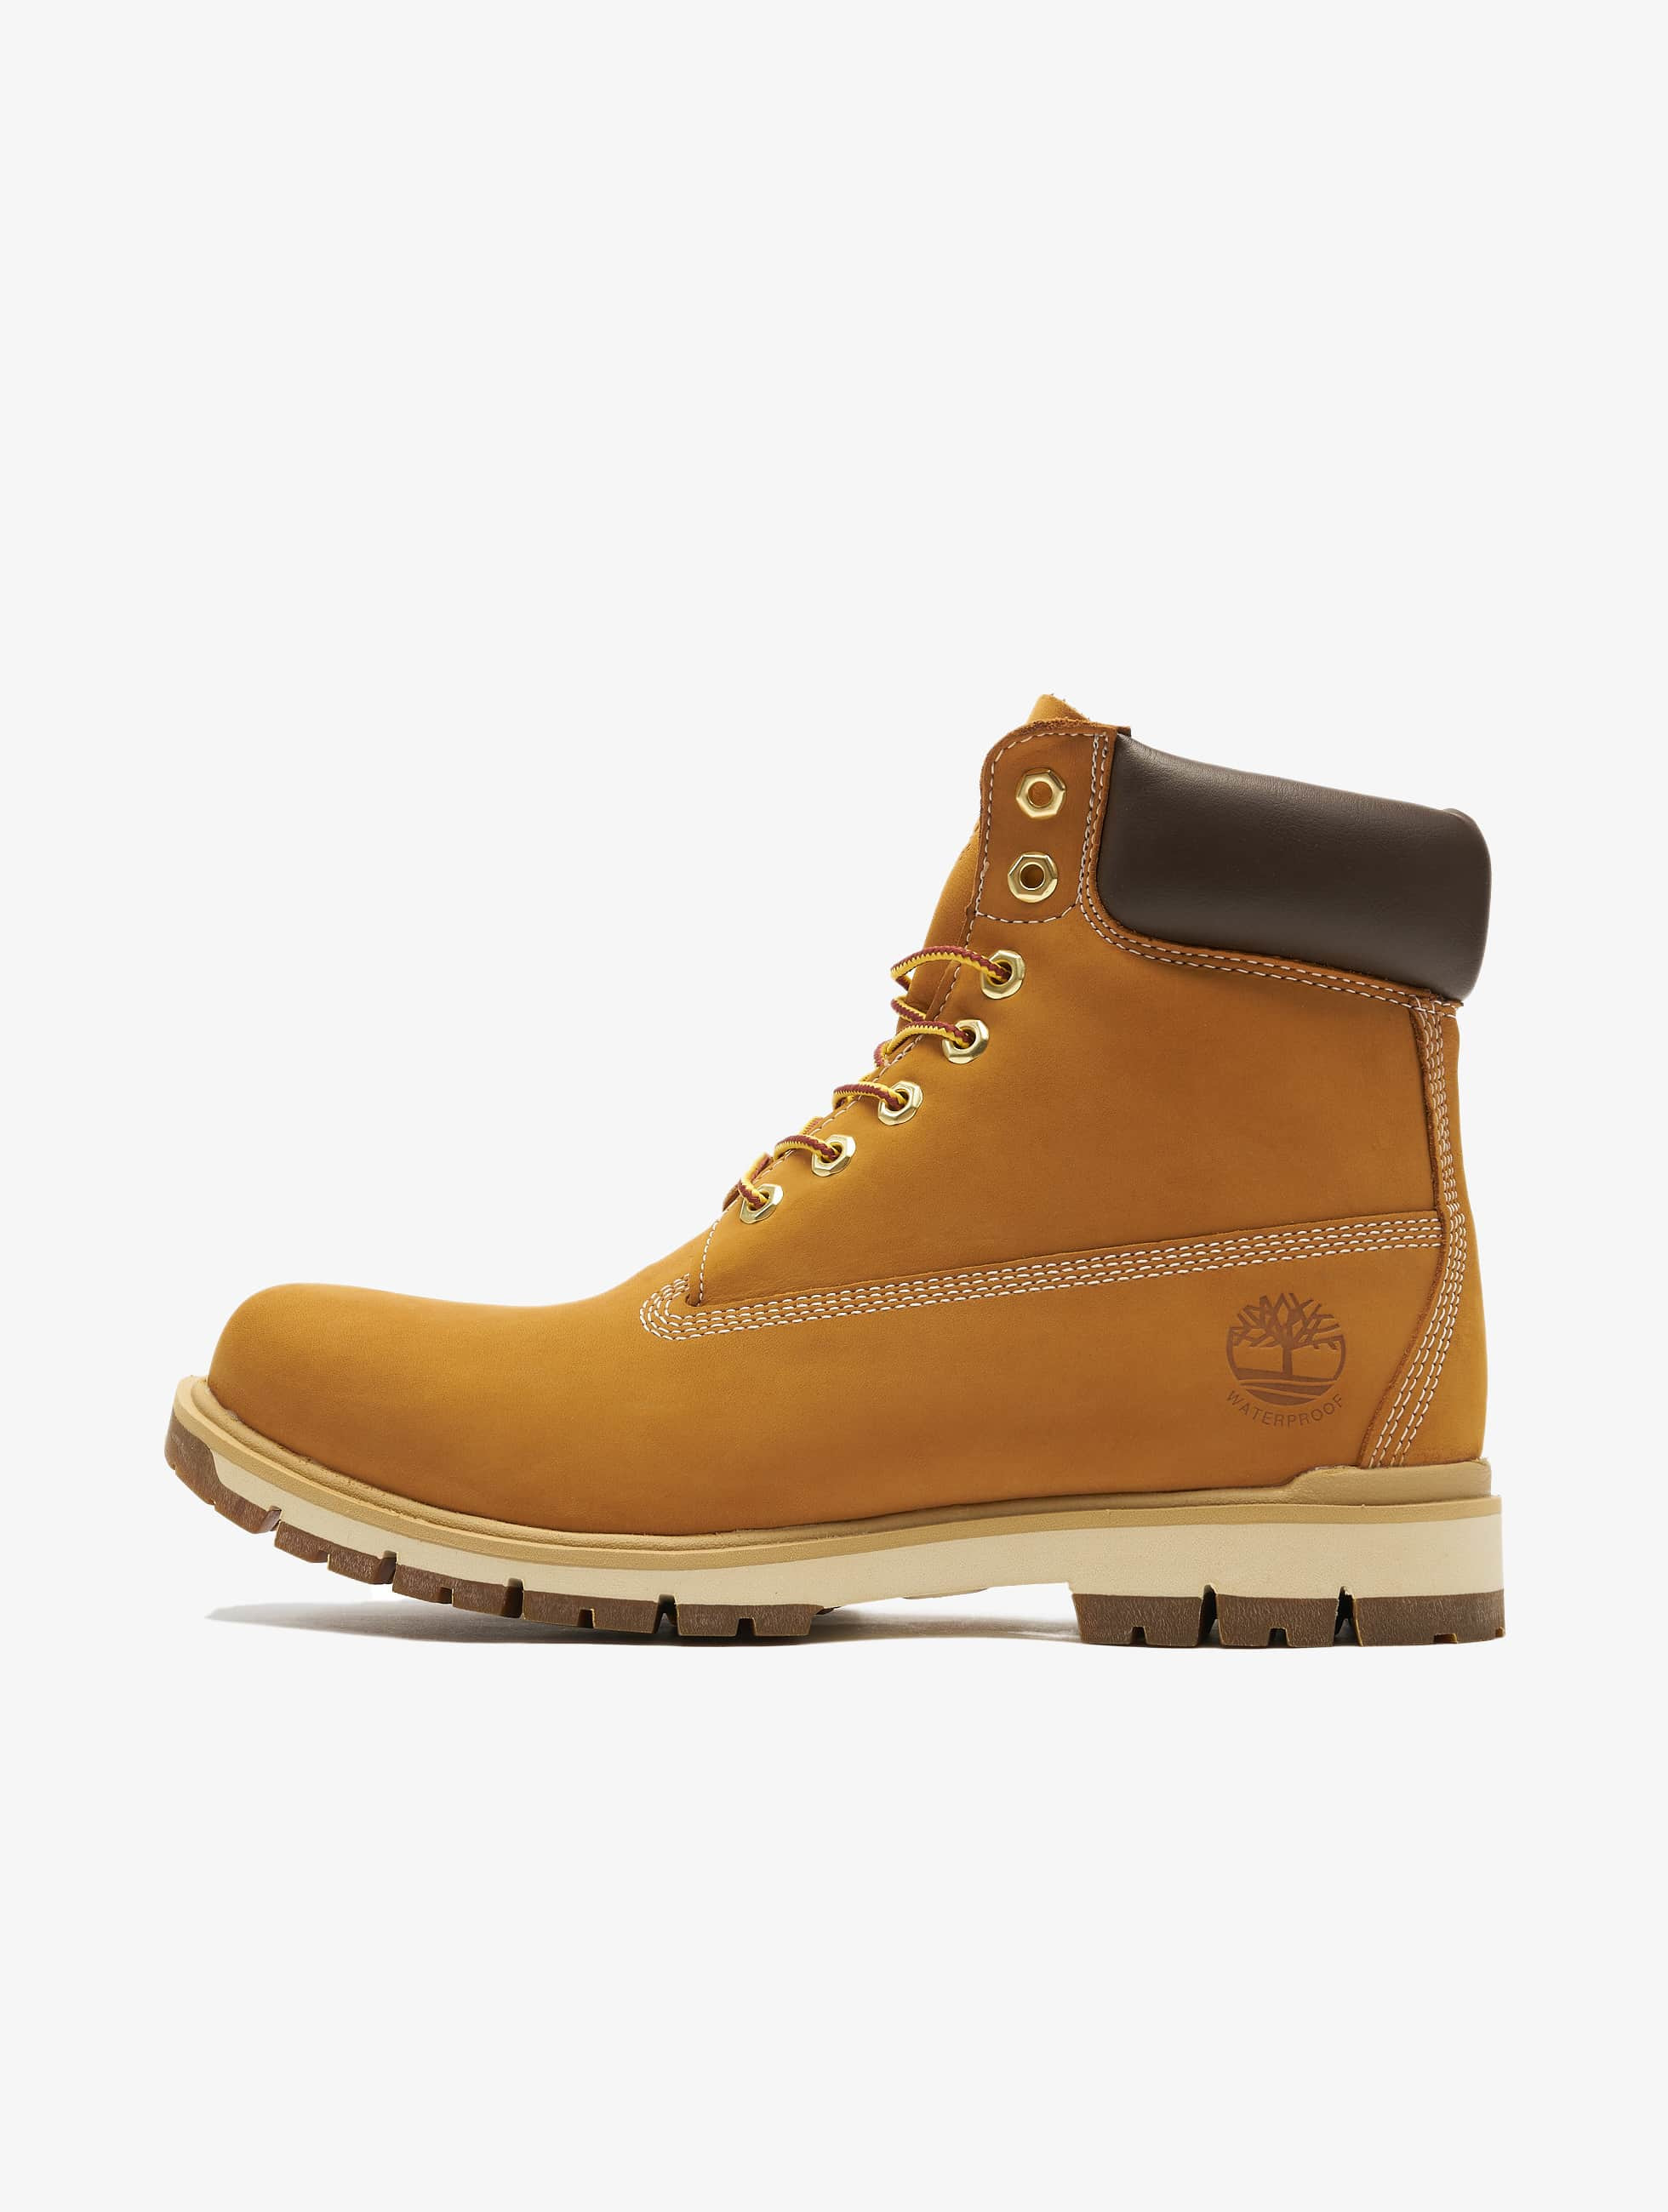 timberland herren schuhe boots 6 inch waterproof ebay. Black Bedroom Furniture Sets. Home Design Ideas